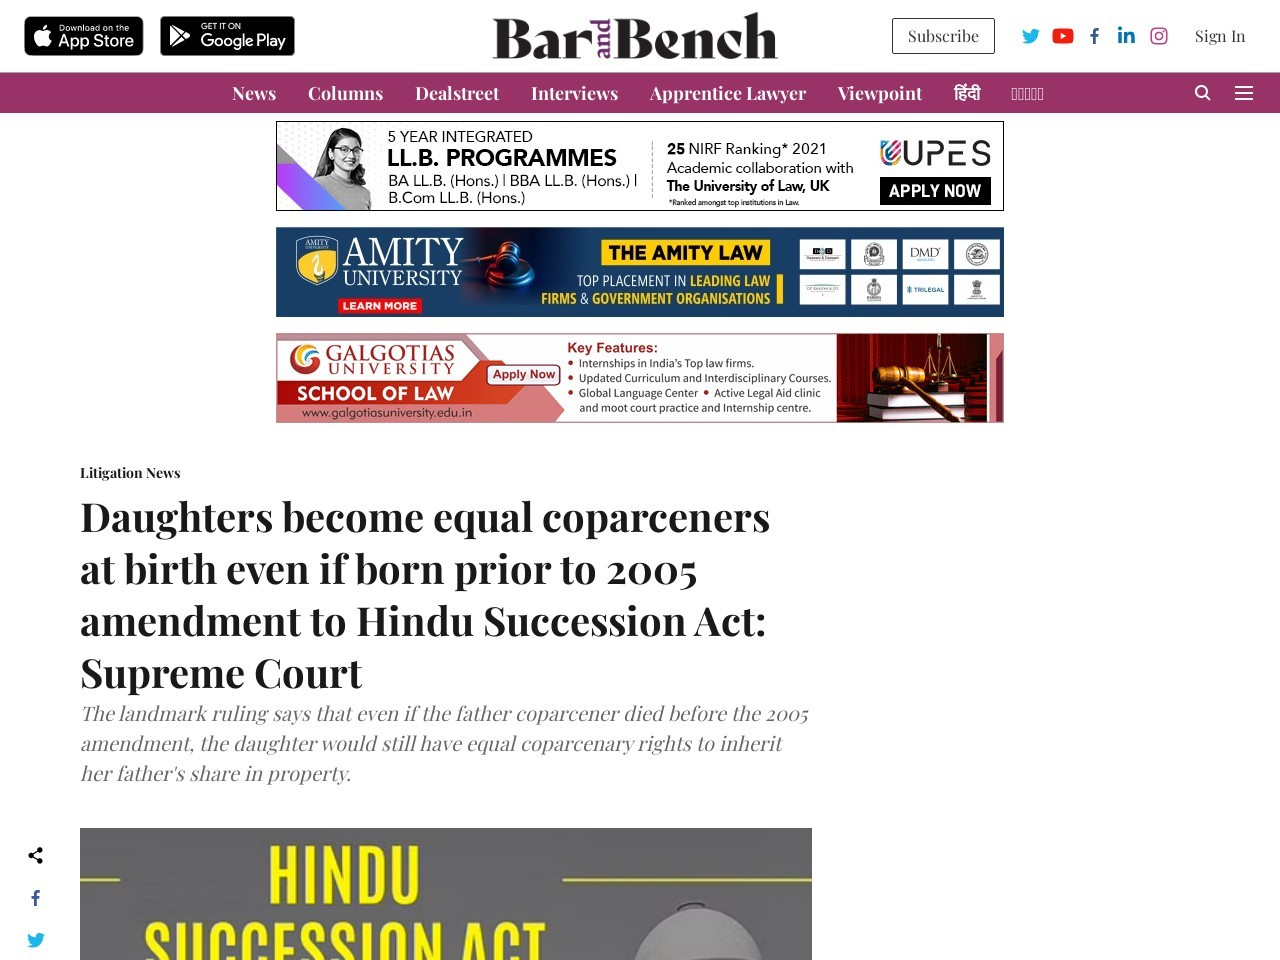 Daughters become equal coparceners at birth even if born prior to 2005 amendment to Hindu Succession…